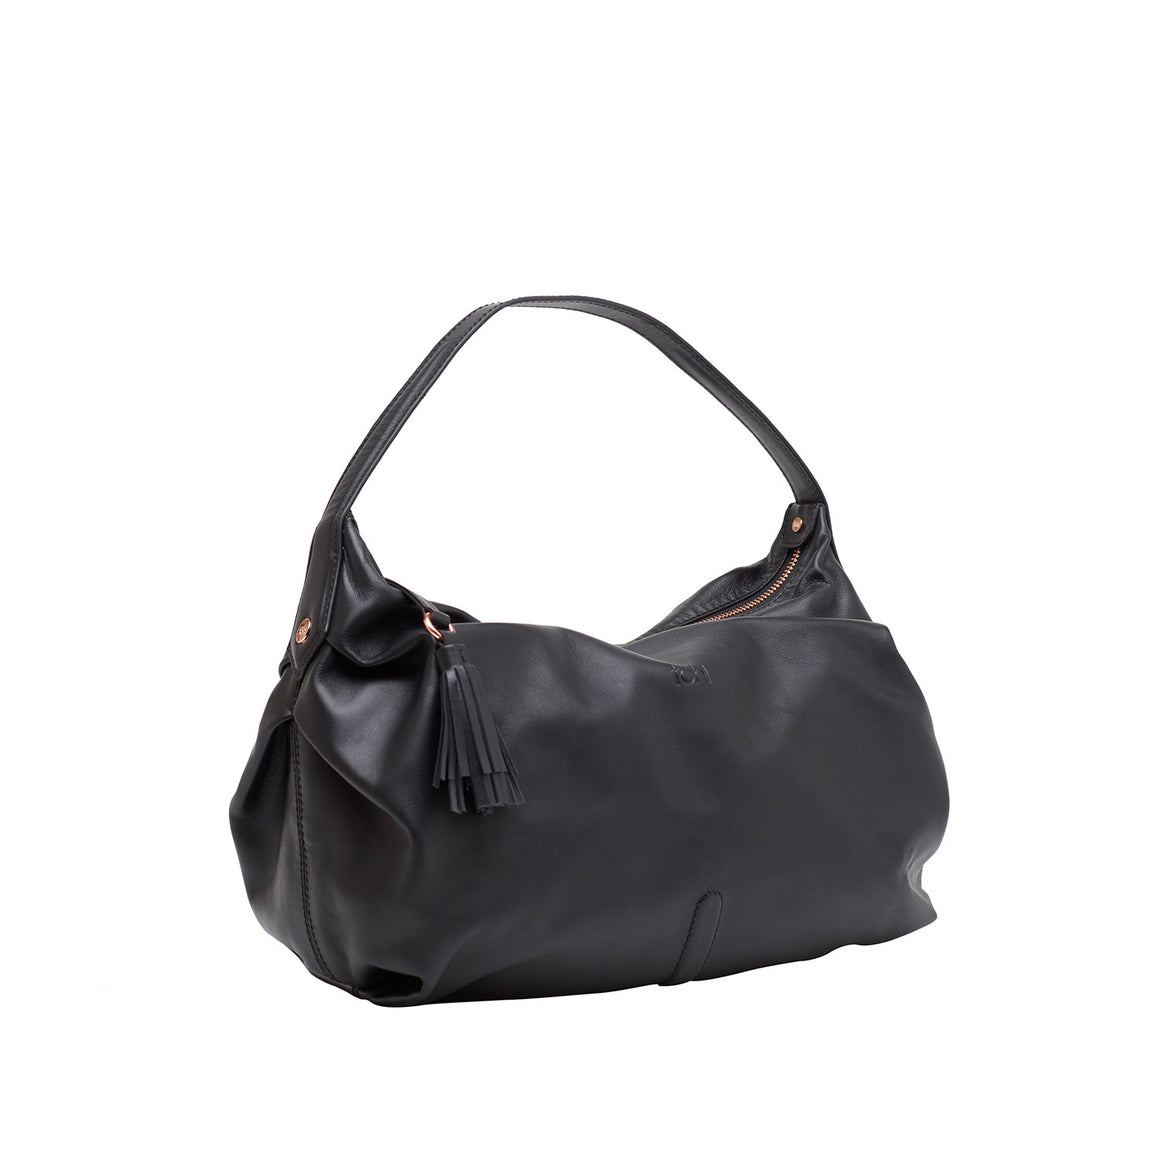 HH 0001 - TOHL TINSLEY WOMEN'S SHOULDER  BAGUETTE - CHARCOAL BLACK